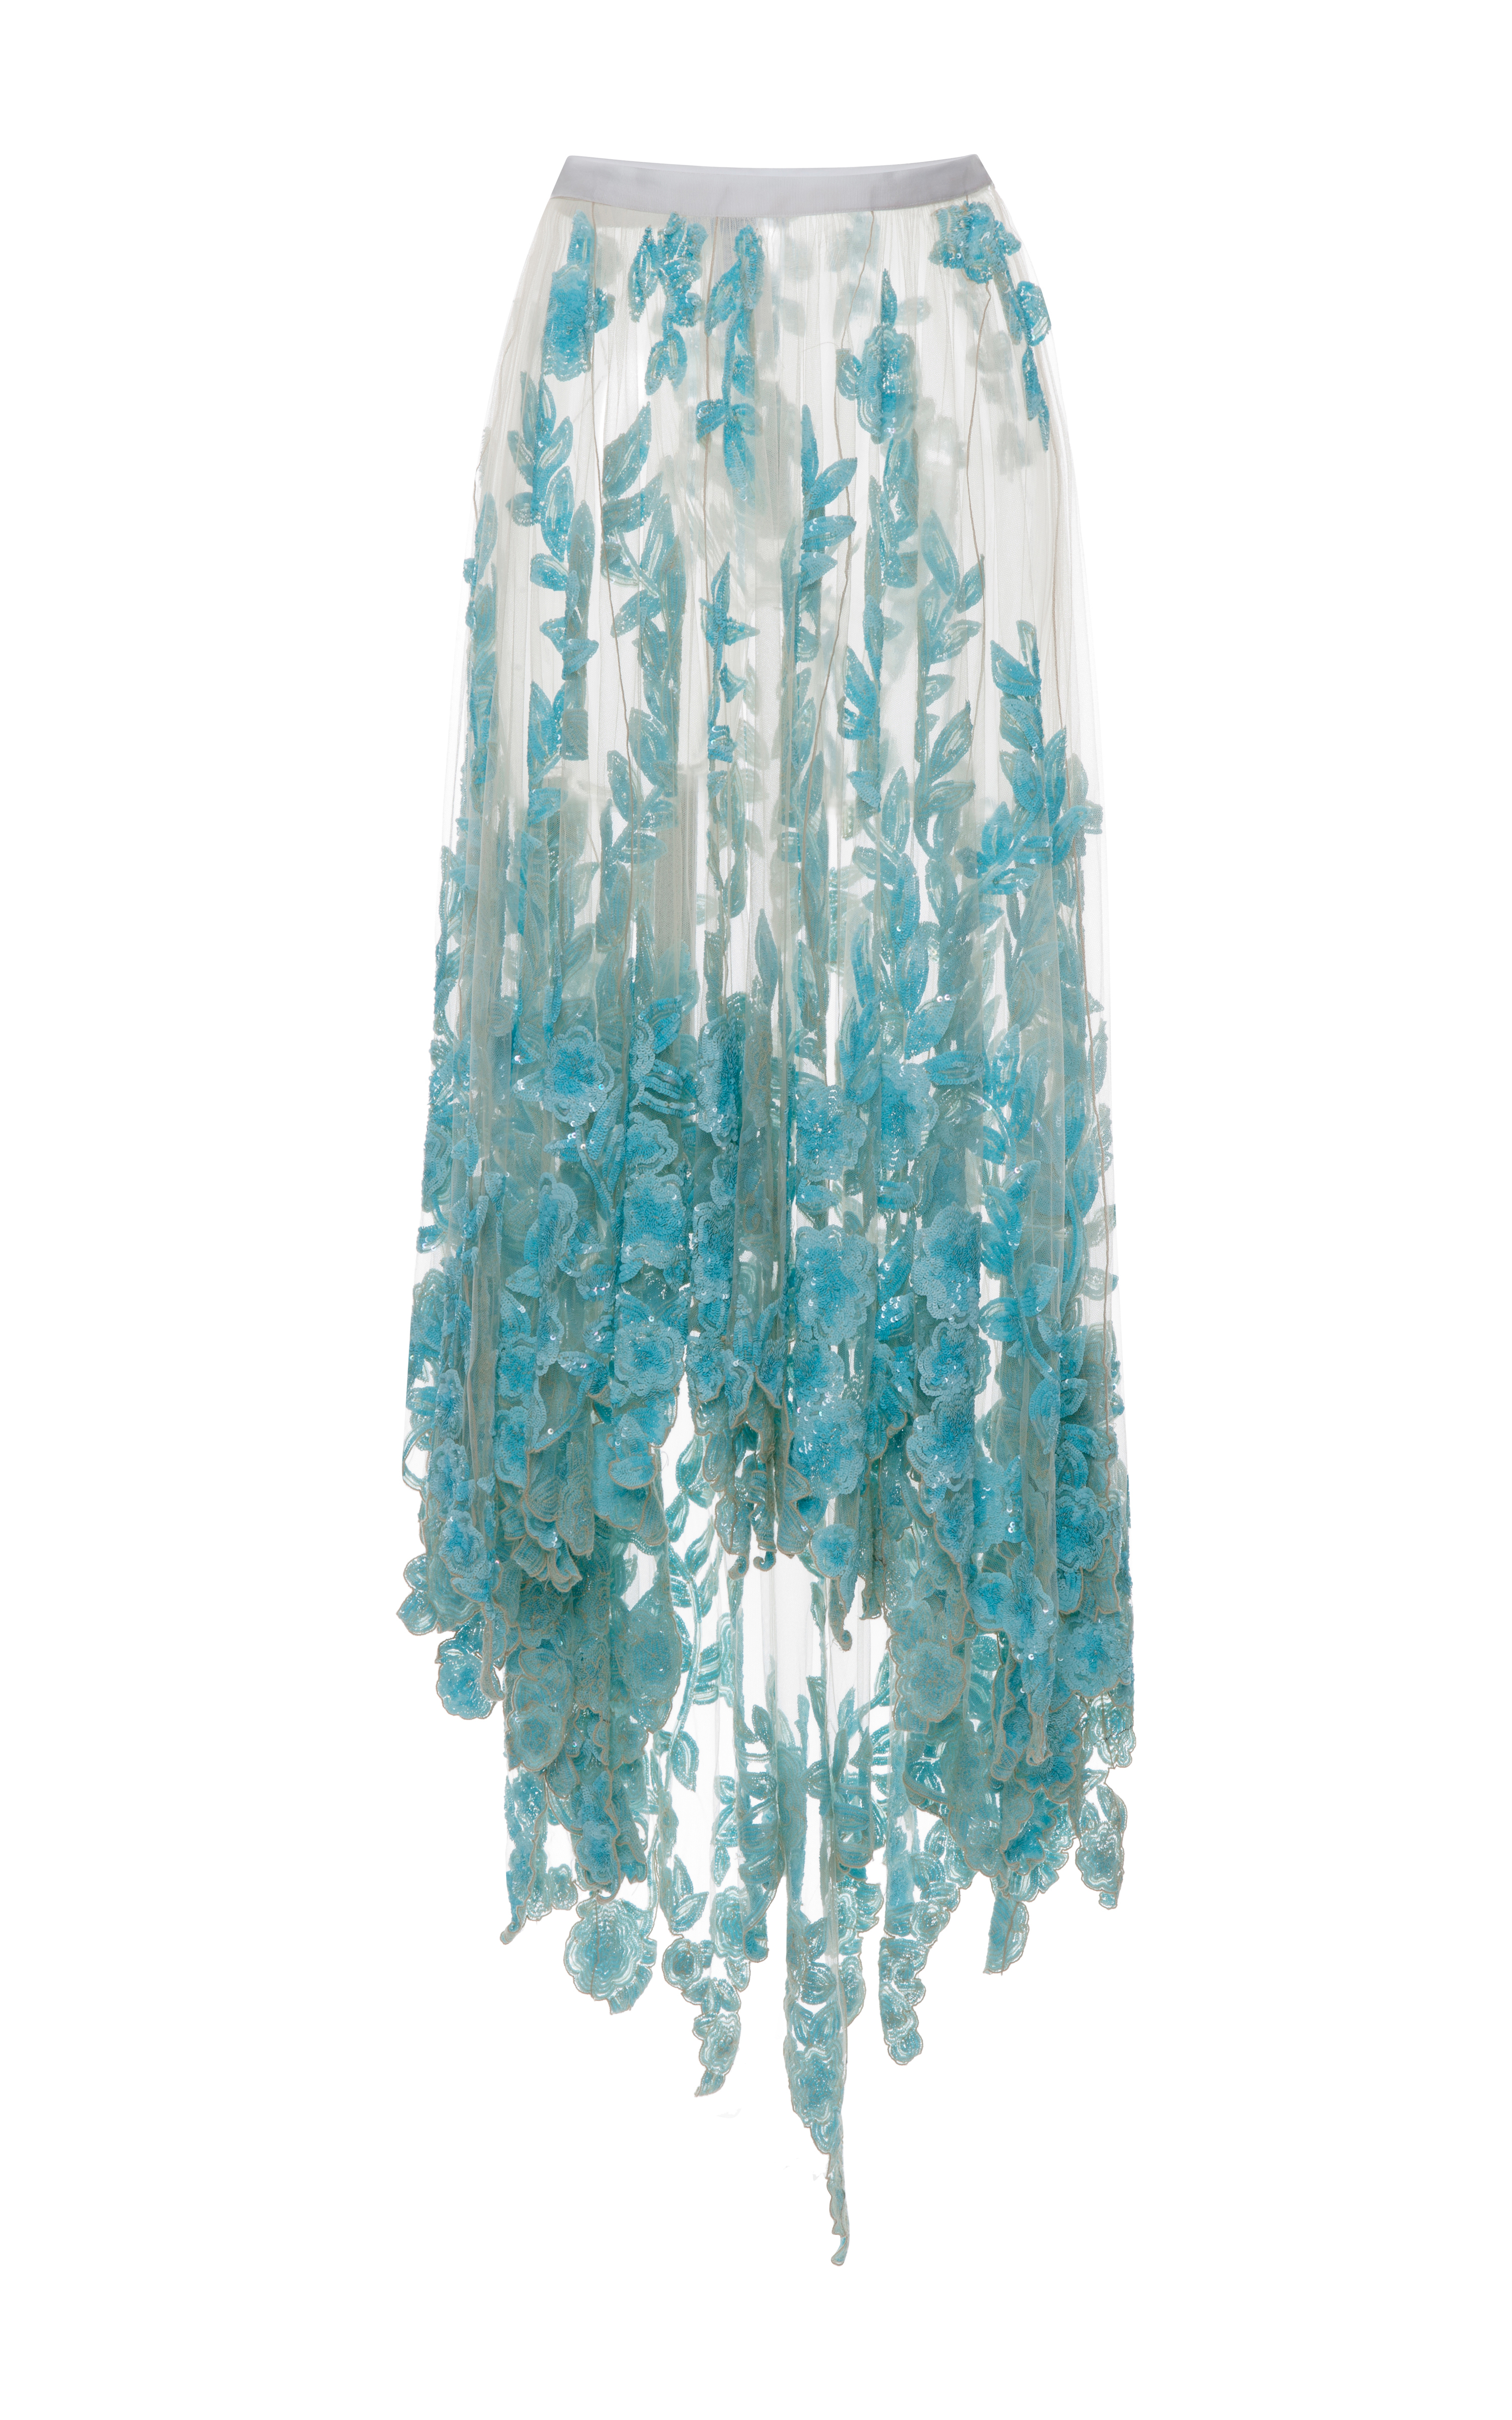 Lyst - Blumarine Long Tulle Skirt with Blue Sequined Flowers in White